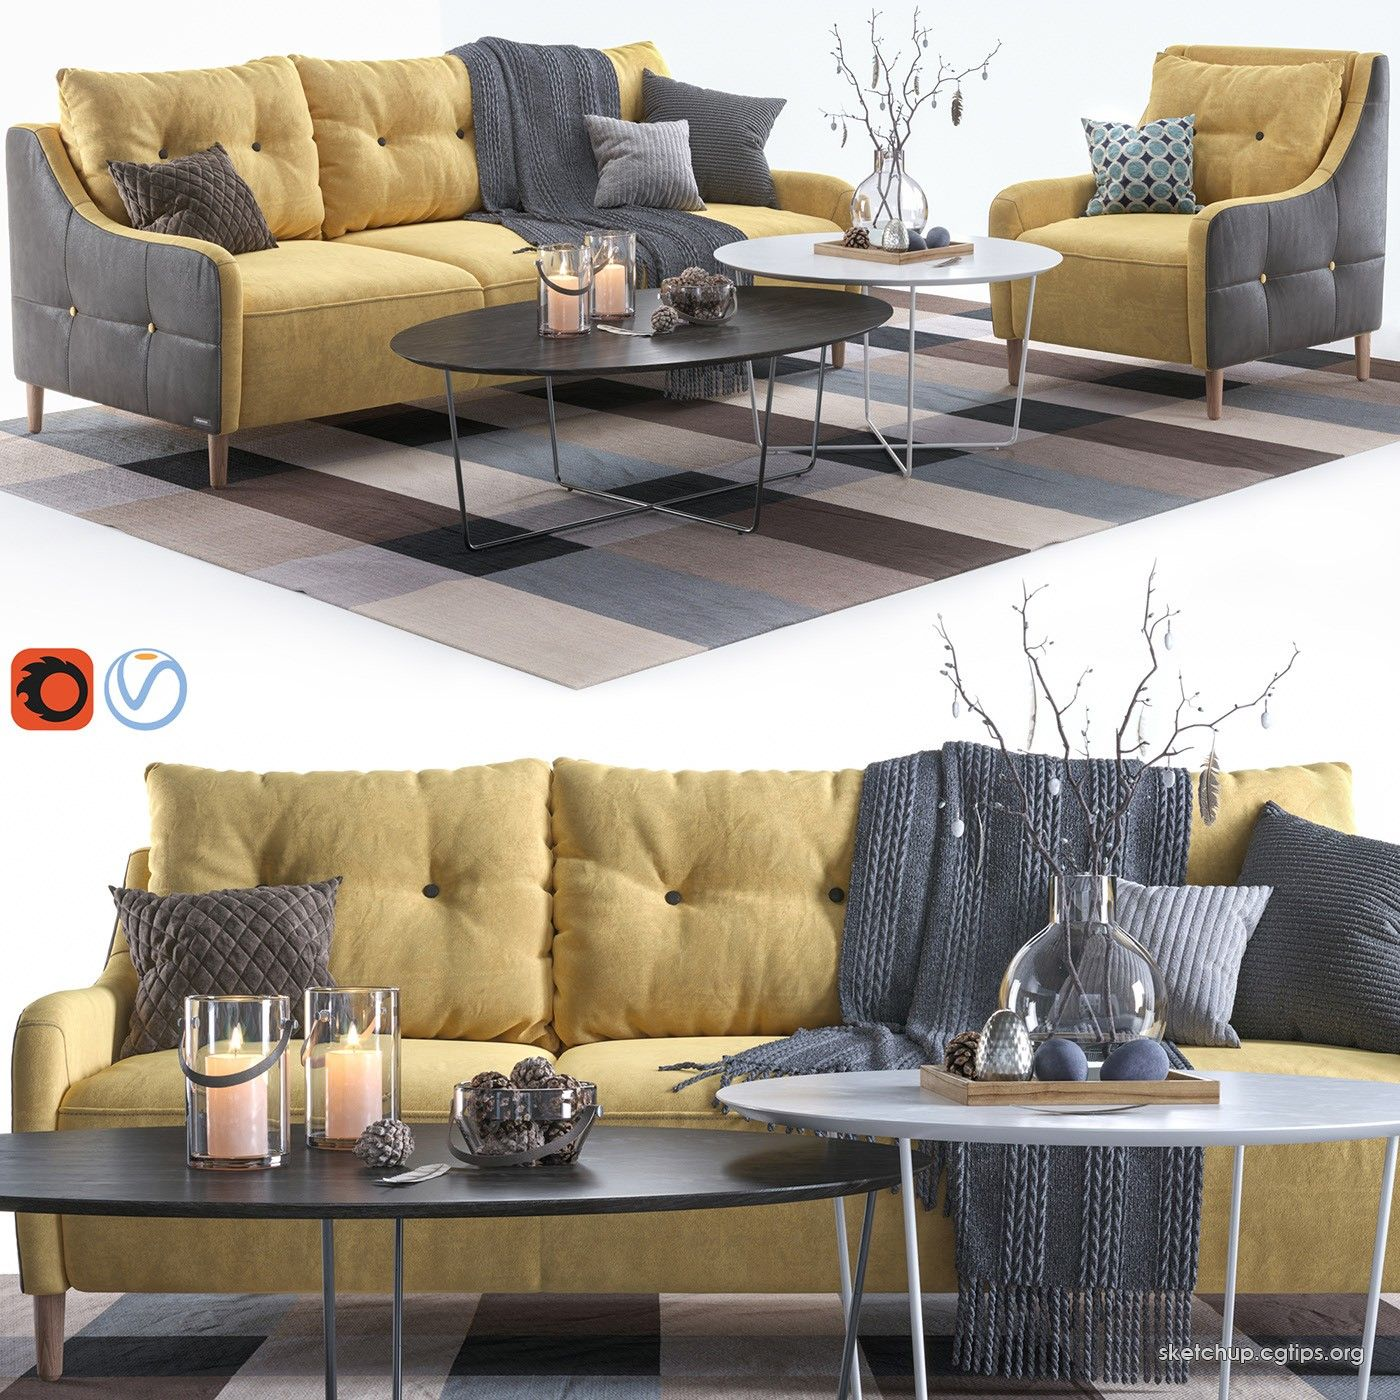 2269 Sofa And Armchair Sketchup Model Free Download Sofa Set Sofa Sofa Manufacturers